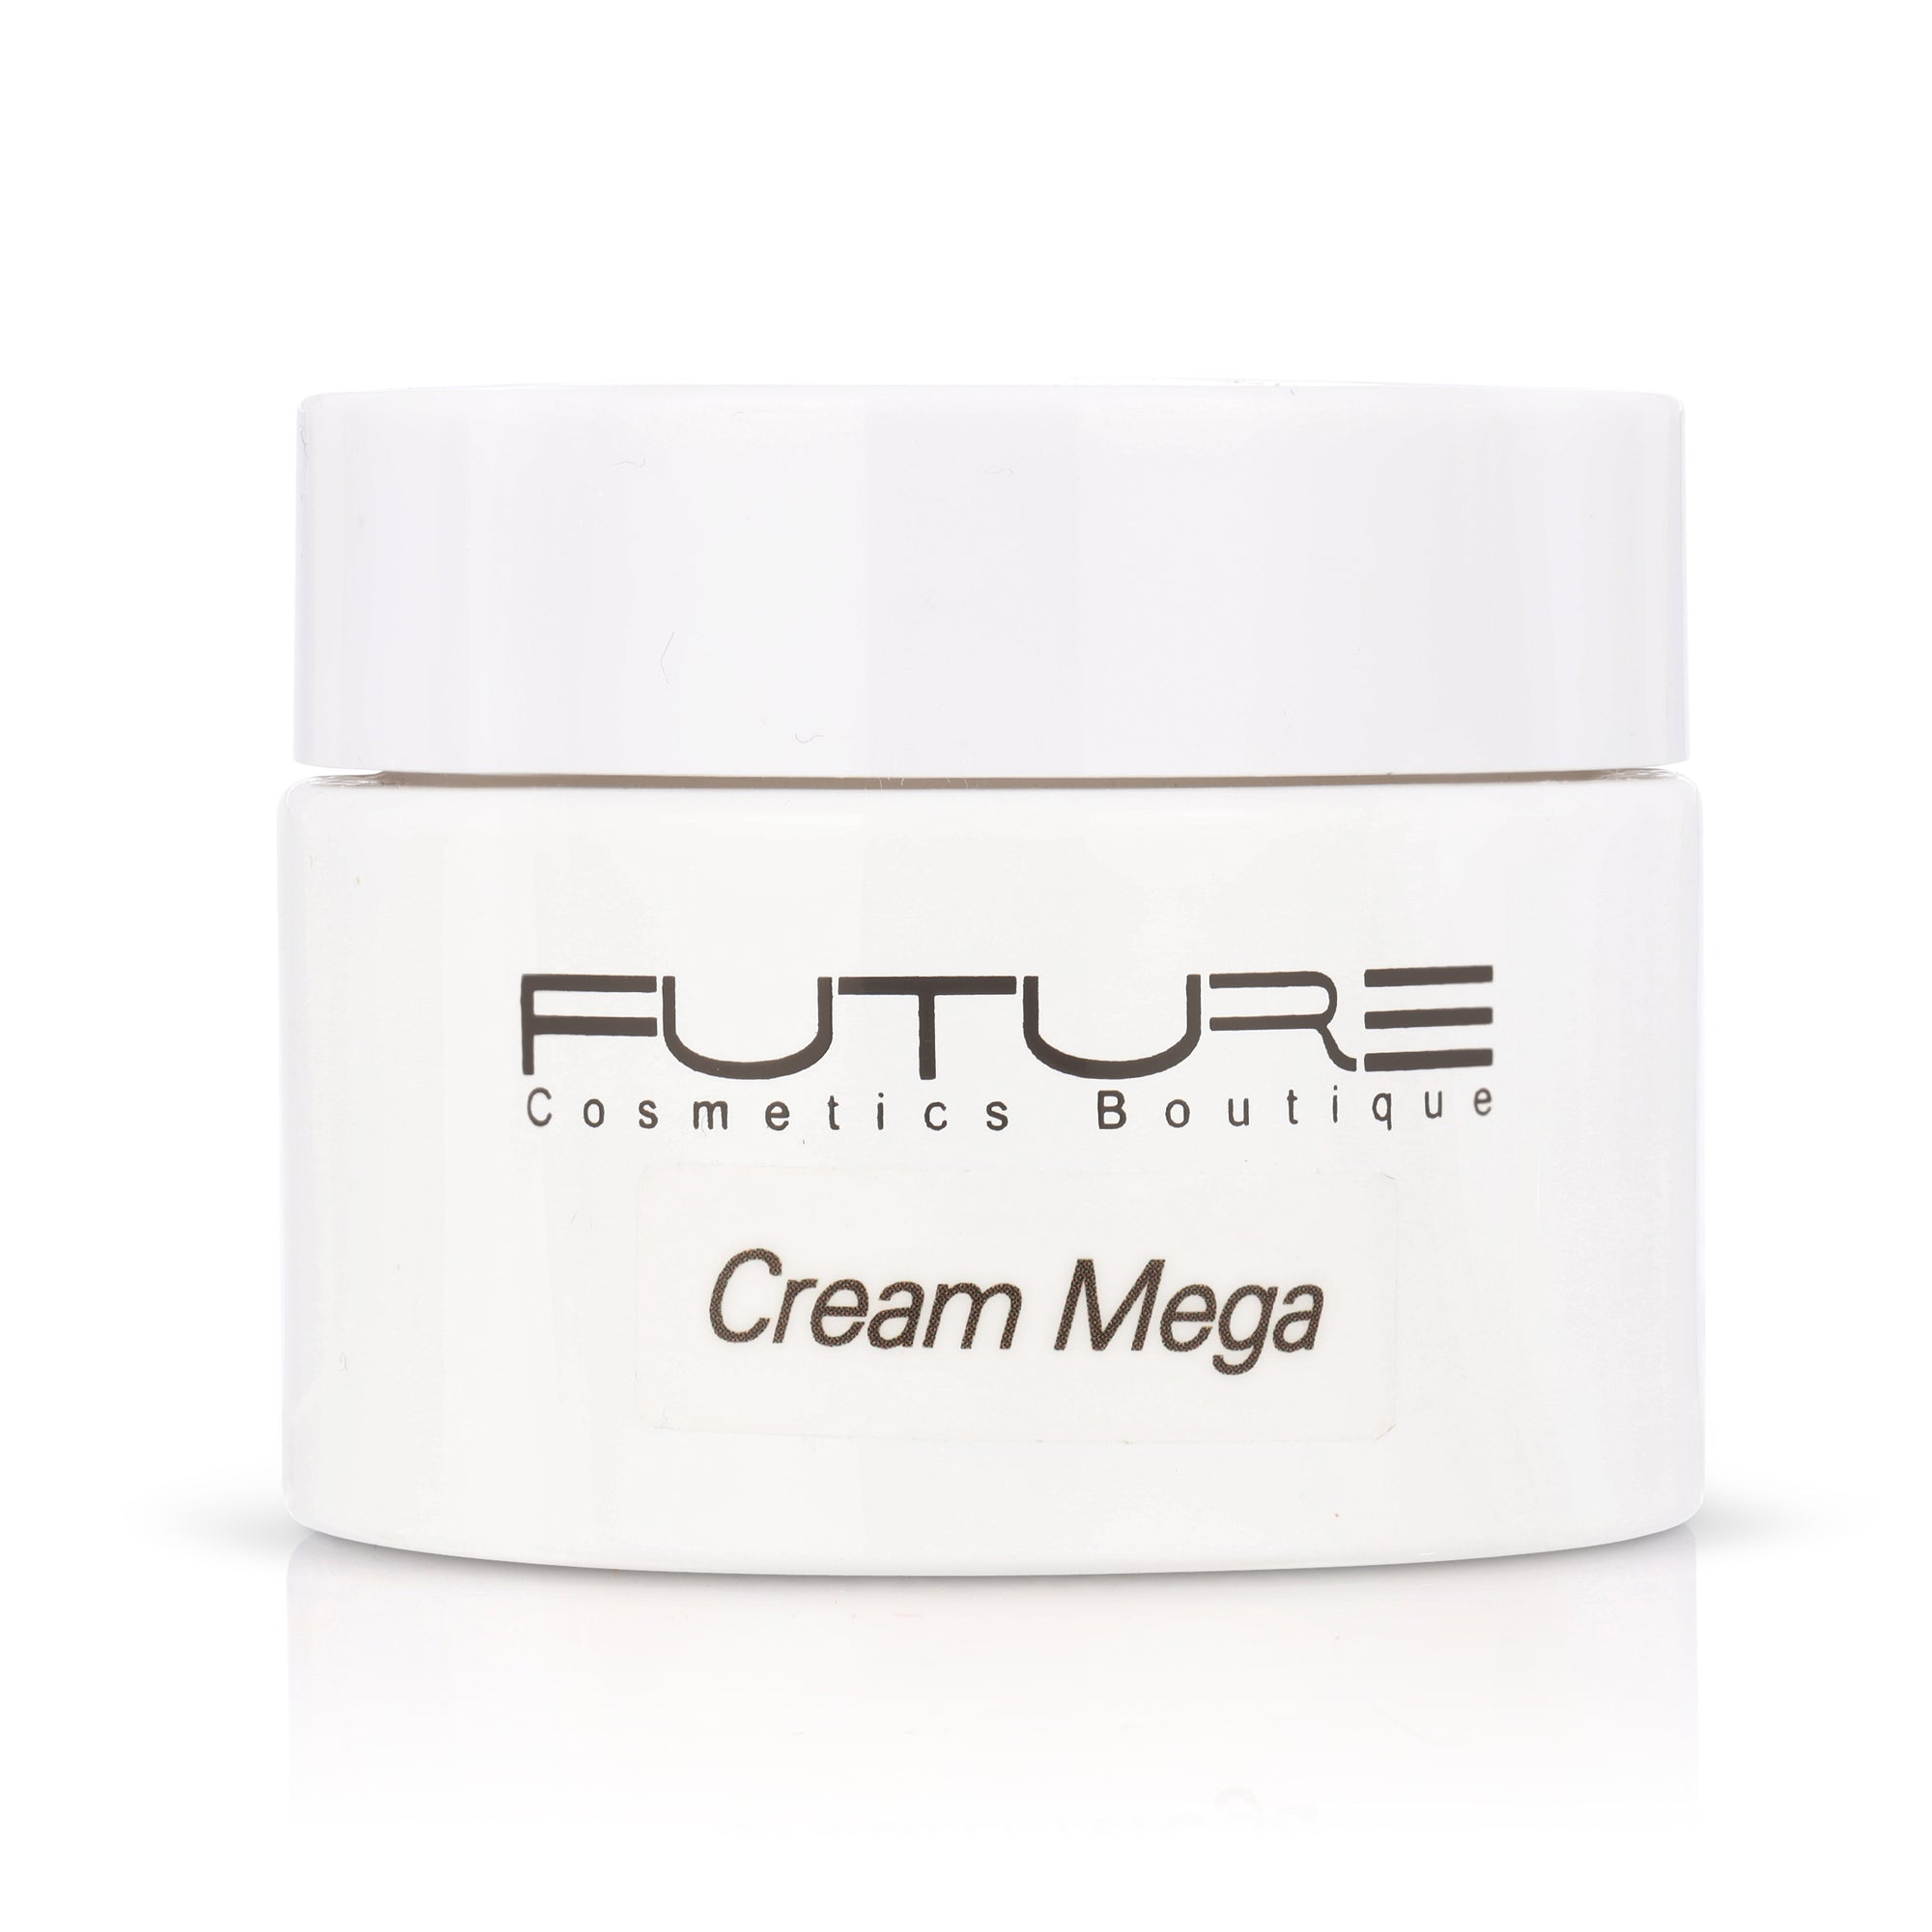 FUTURE - CREAM MEGA 1.7 FL. OZ.